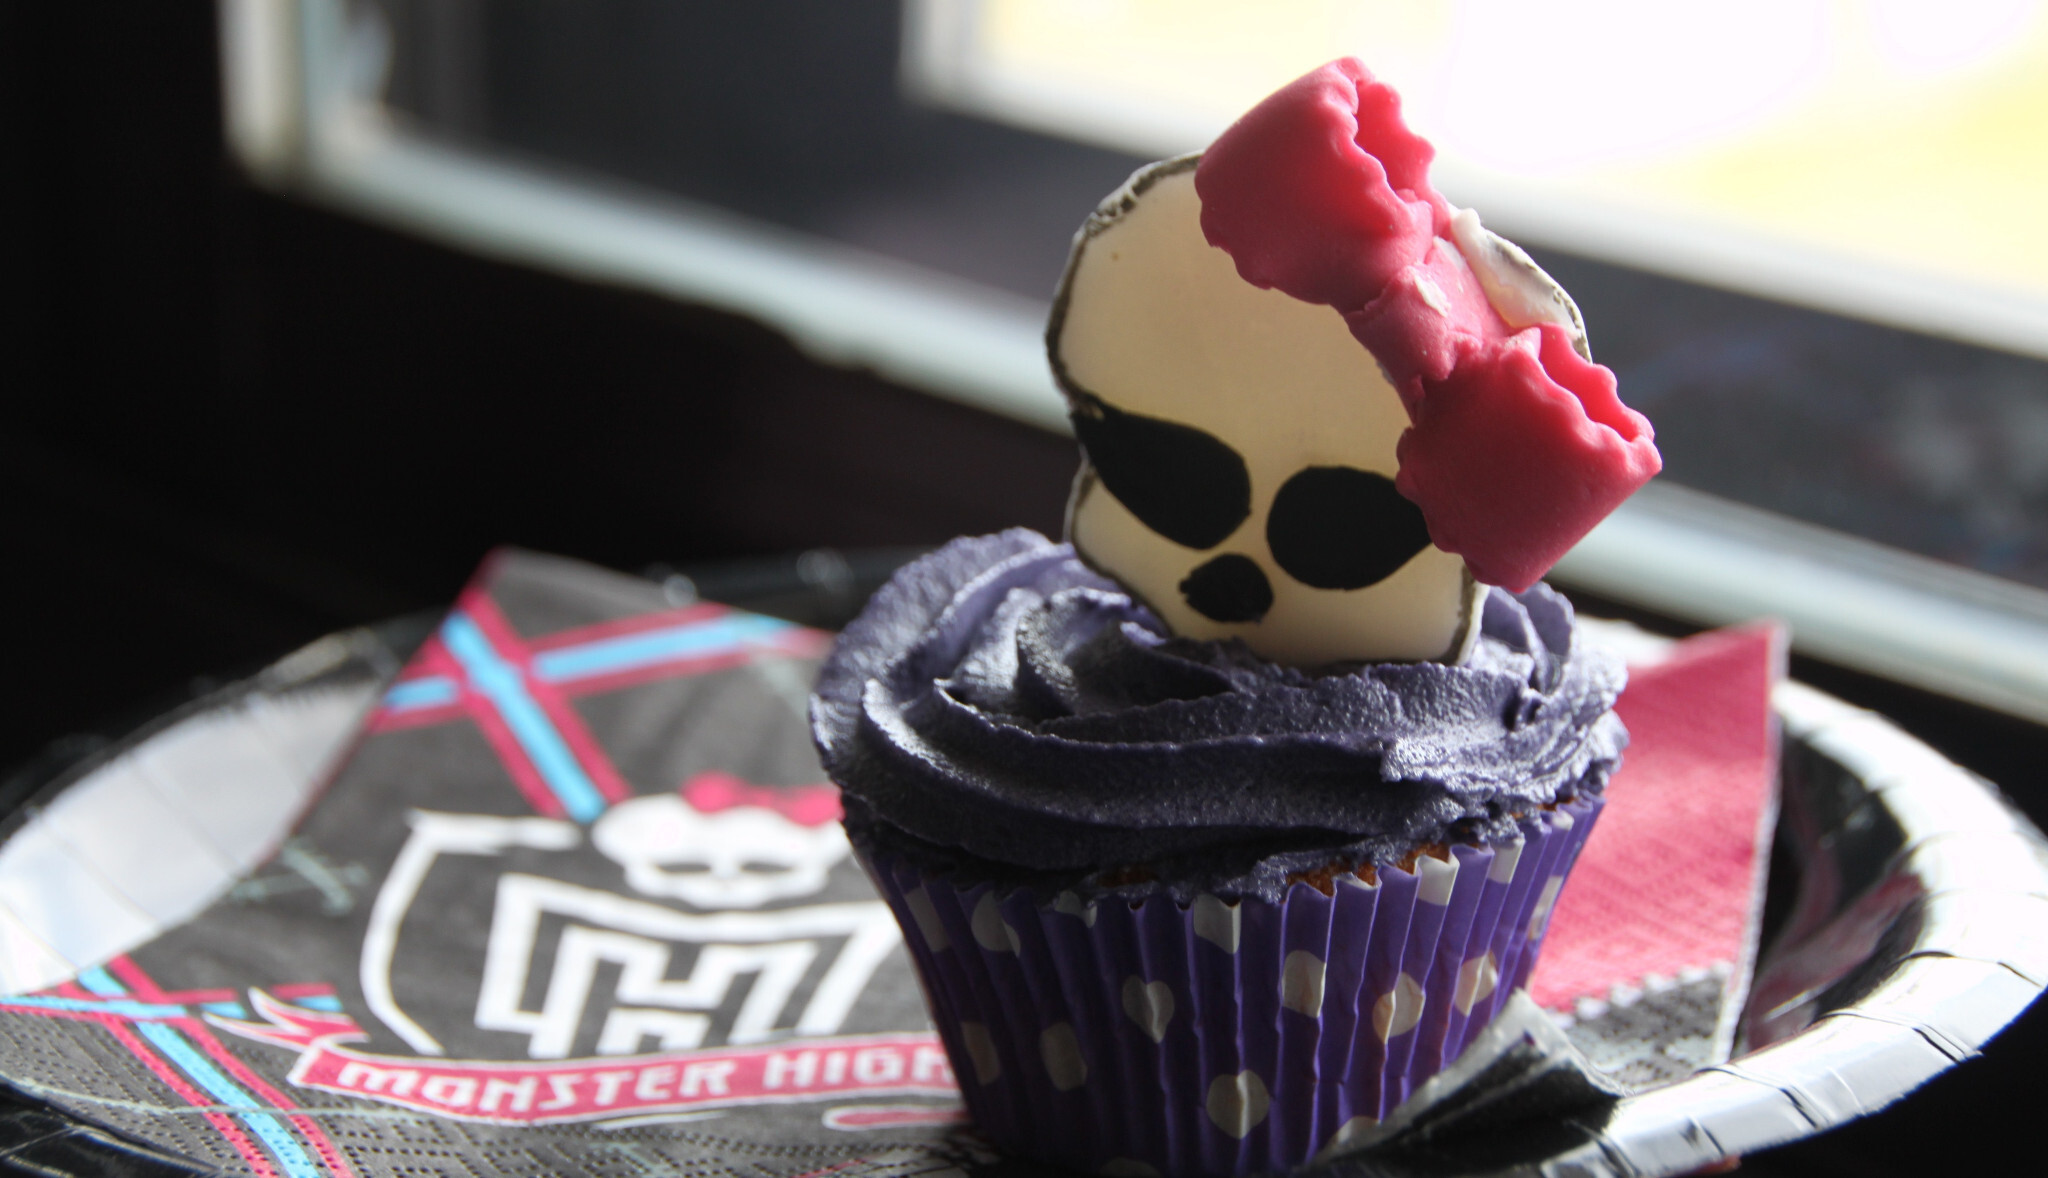 Monster High Cupcakes for Cristina Fashion Day